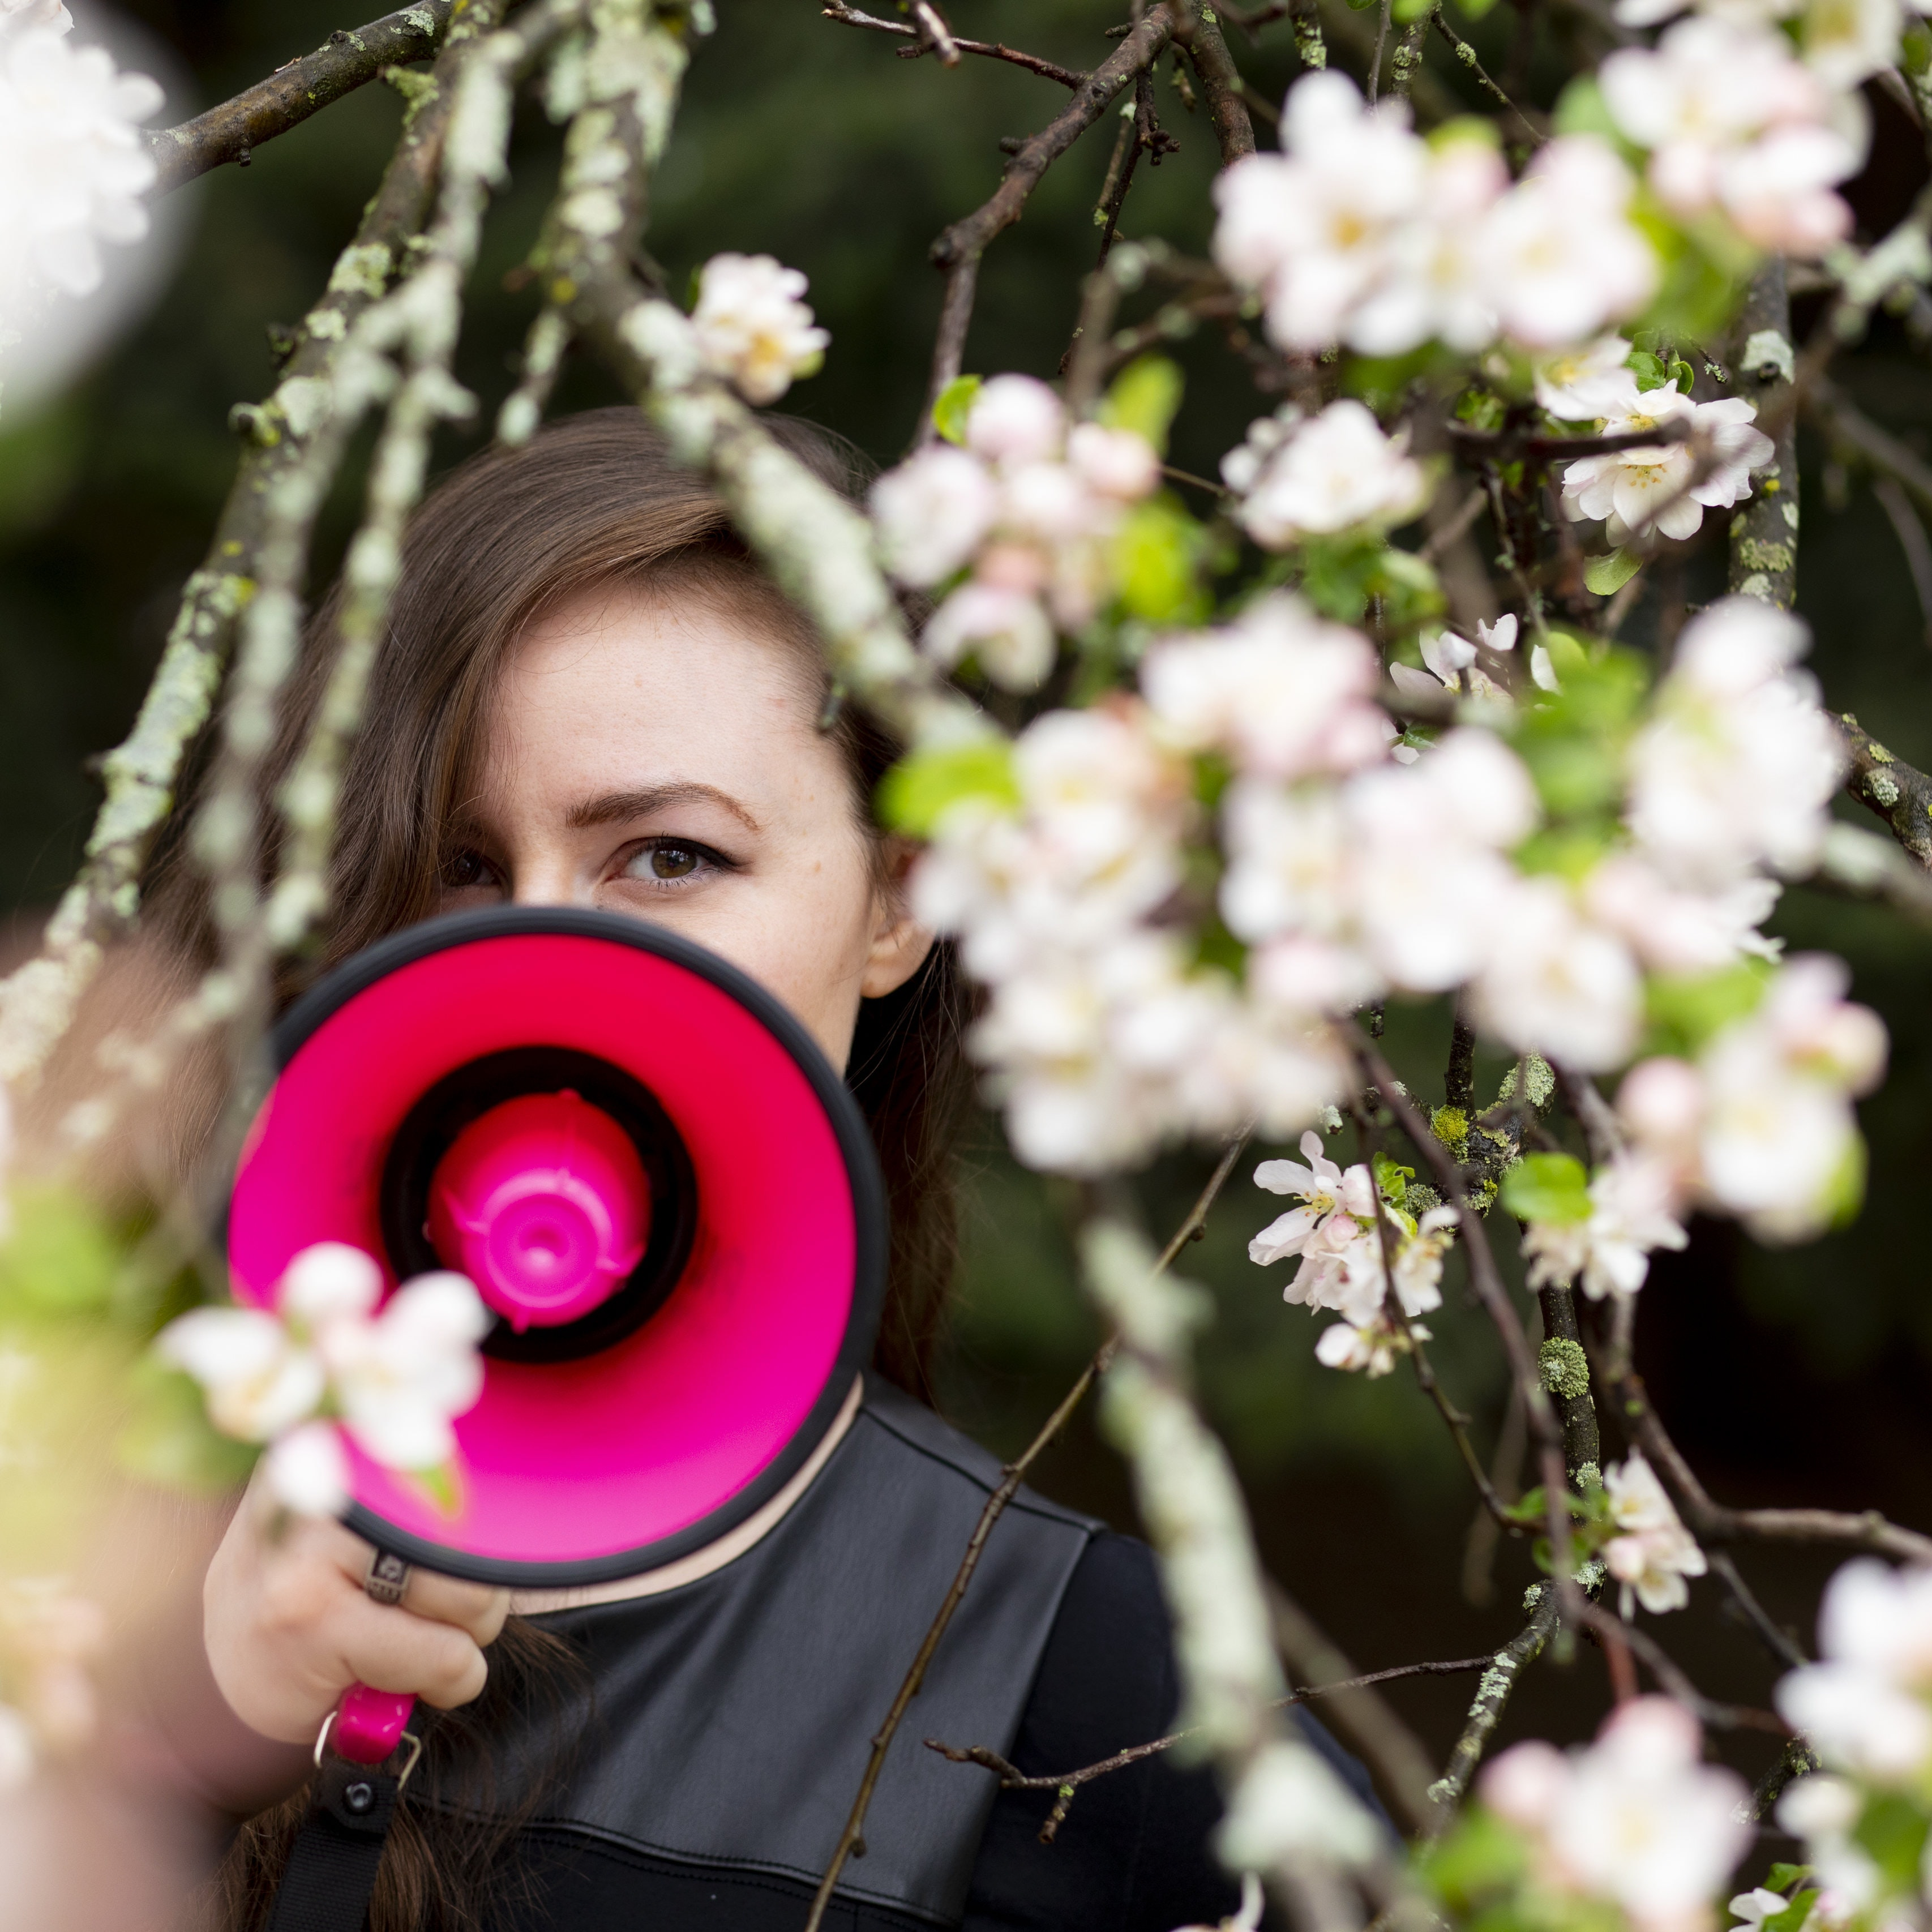 A woman stands among the lilacs, her face partially obscured by a fuchsia megaphone.